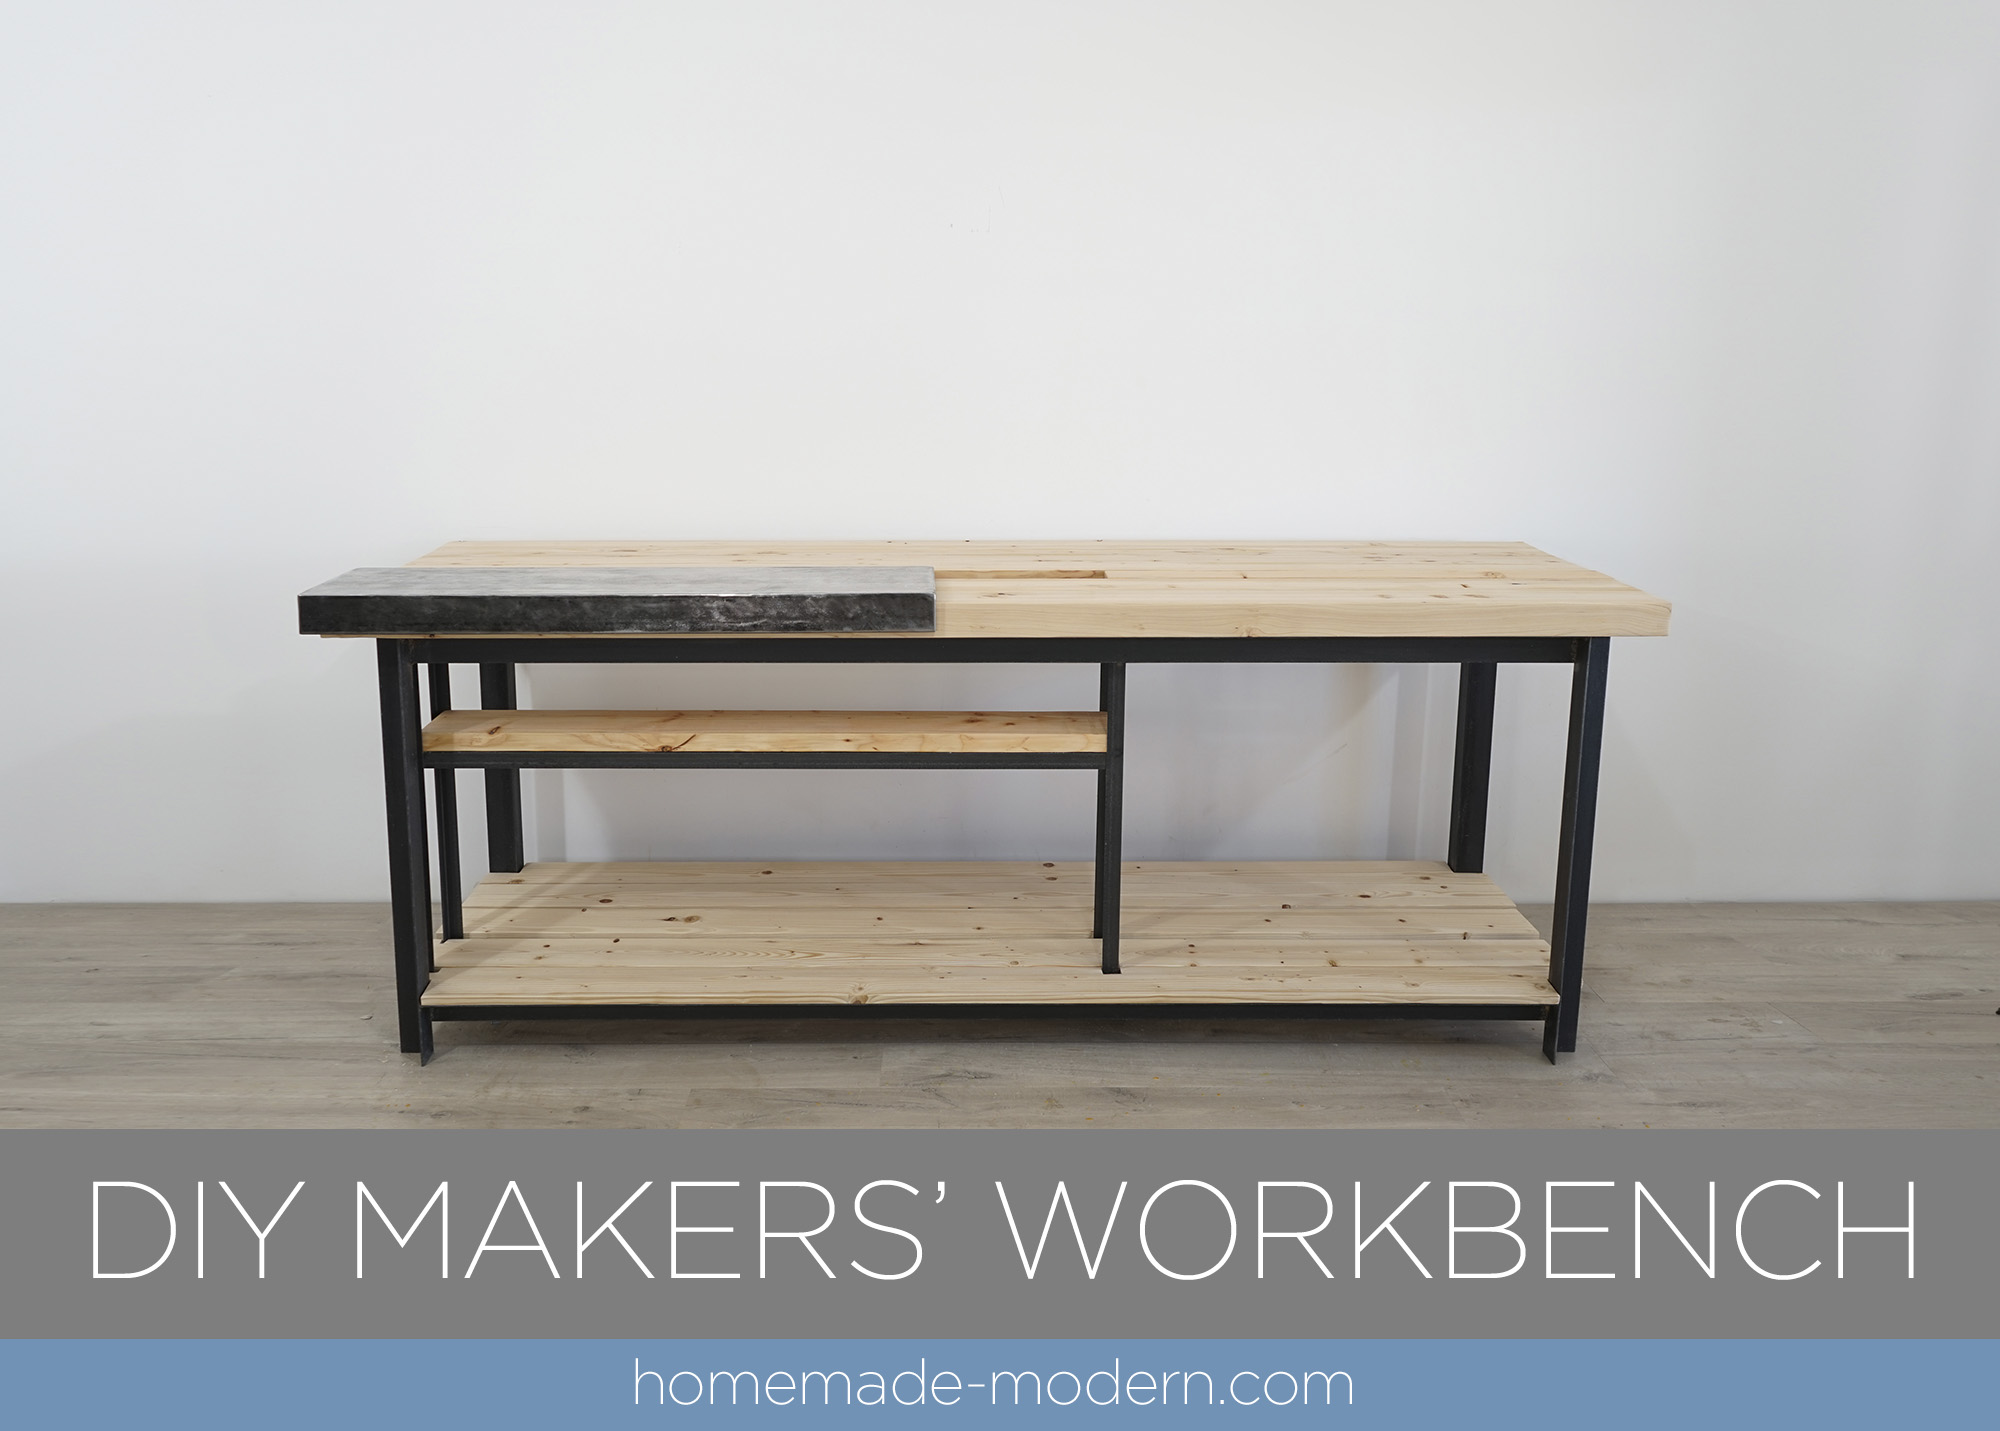 Diy Workbench With Wheels Homemade Modern Ep132 Diy Makers Workbench